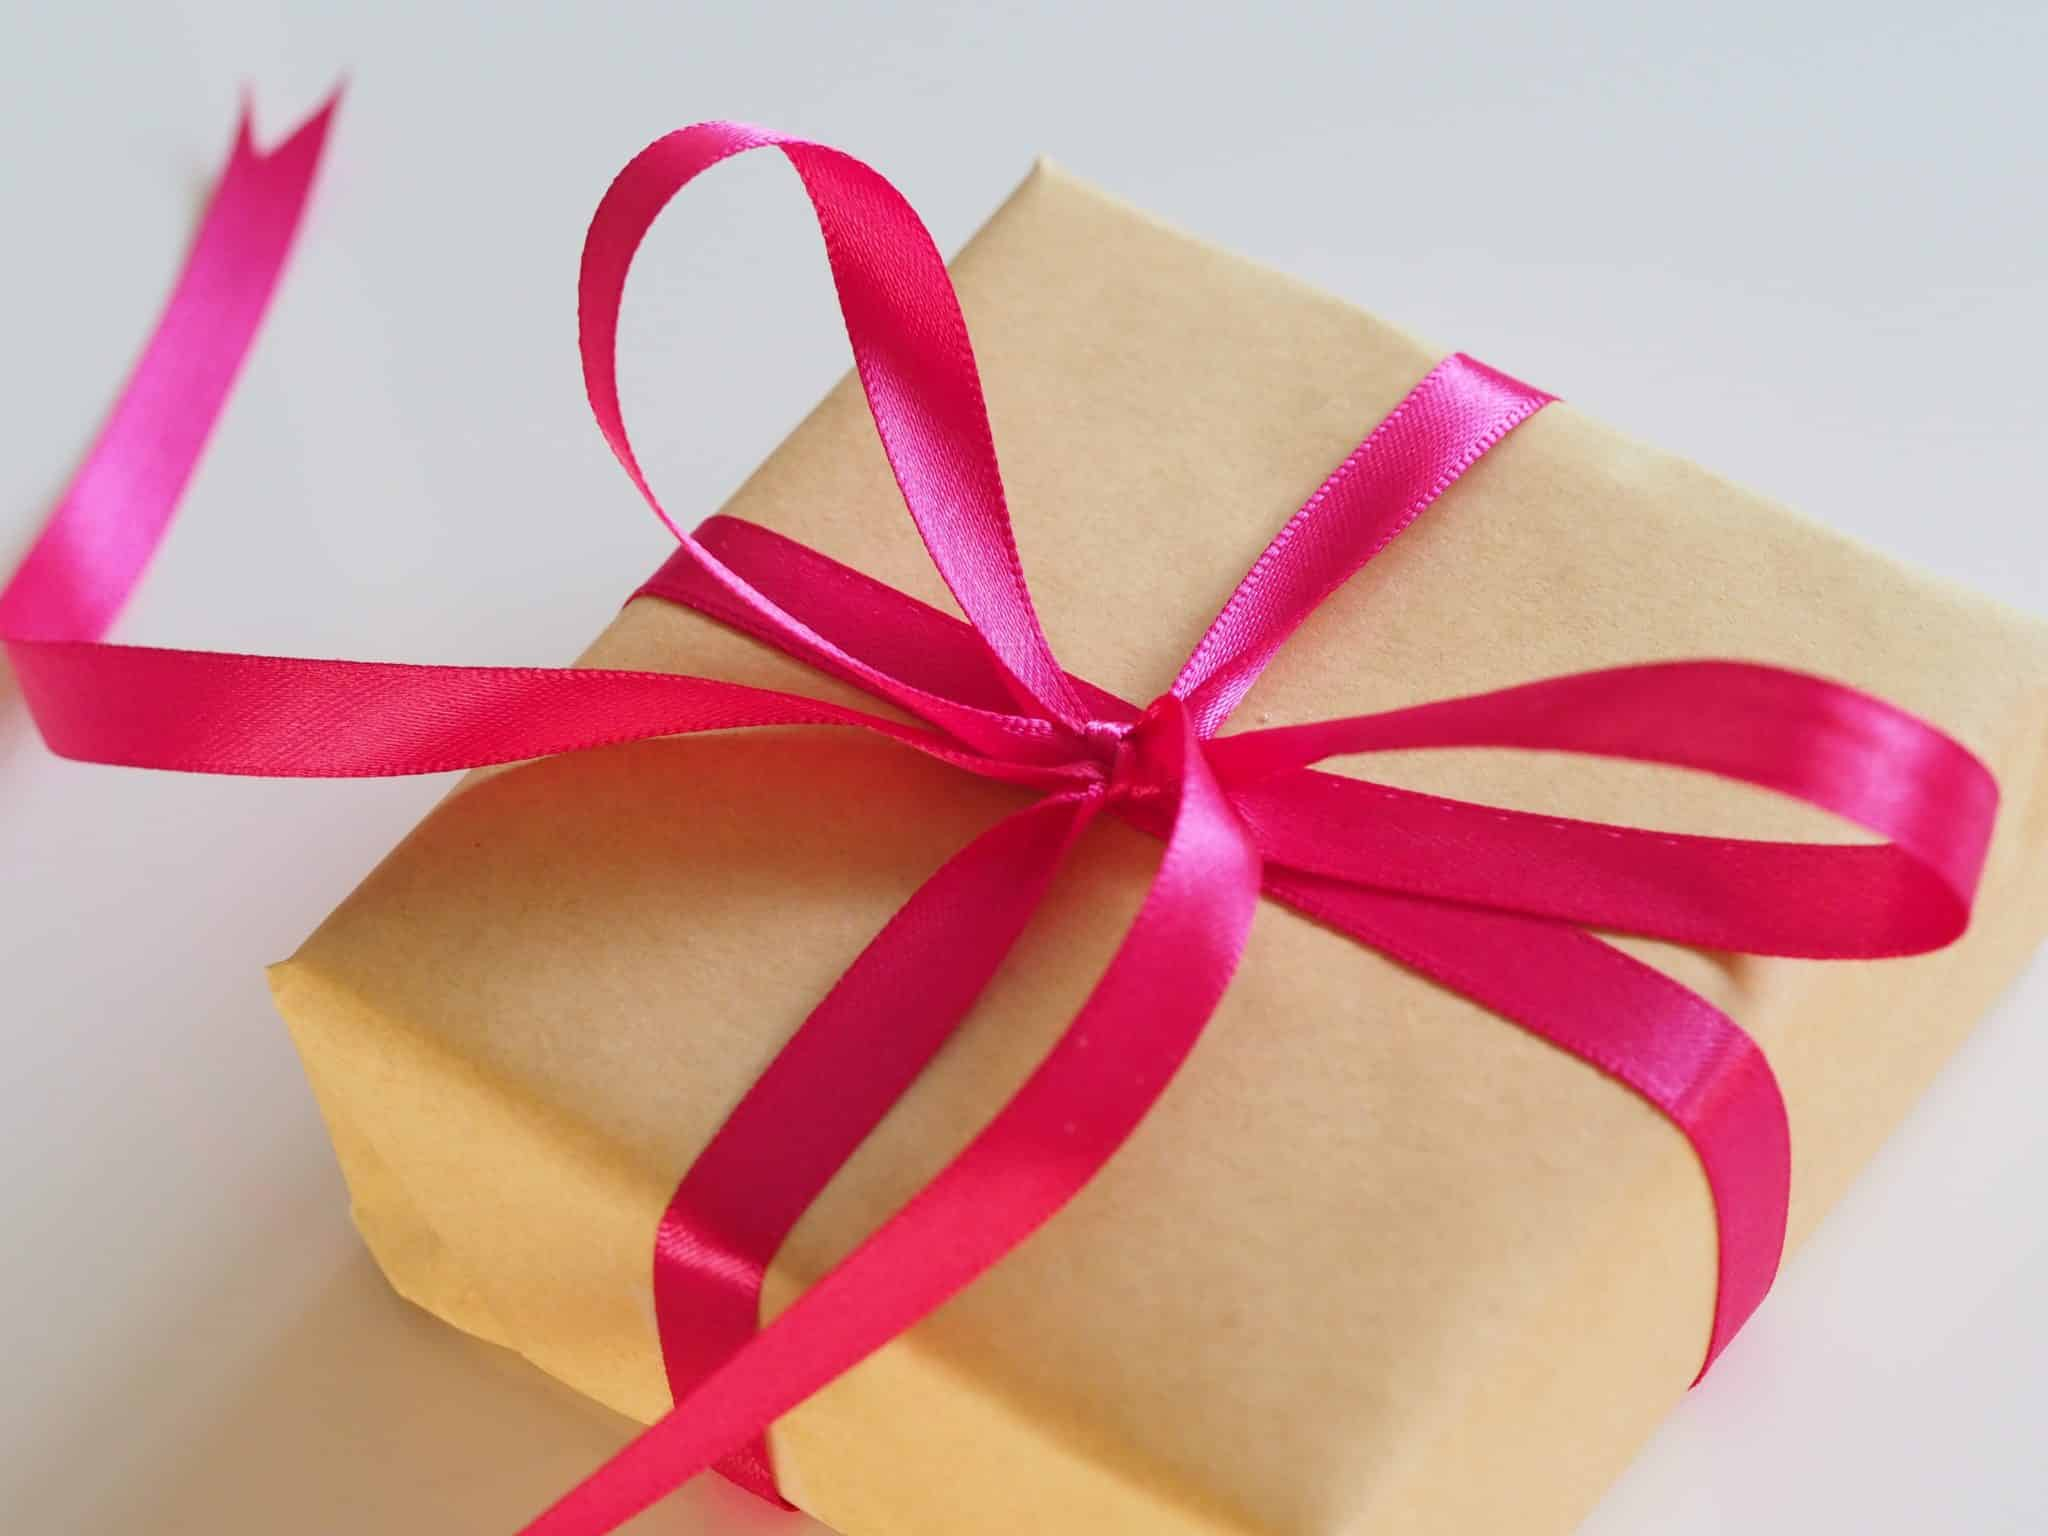 Package wrapped with brown paper and a pink bow